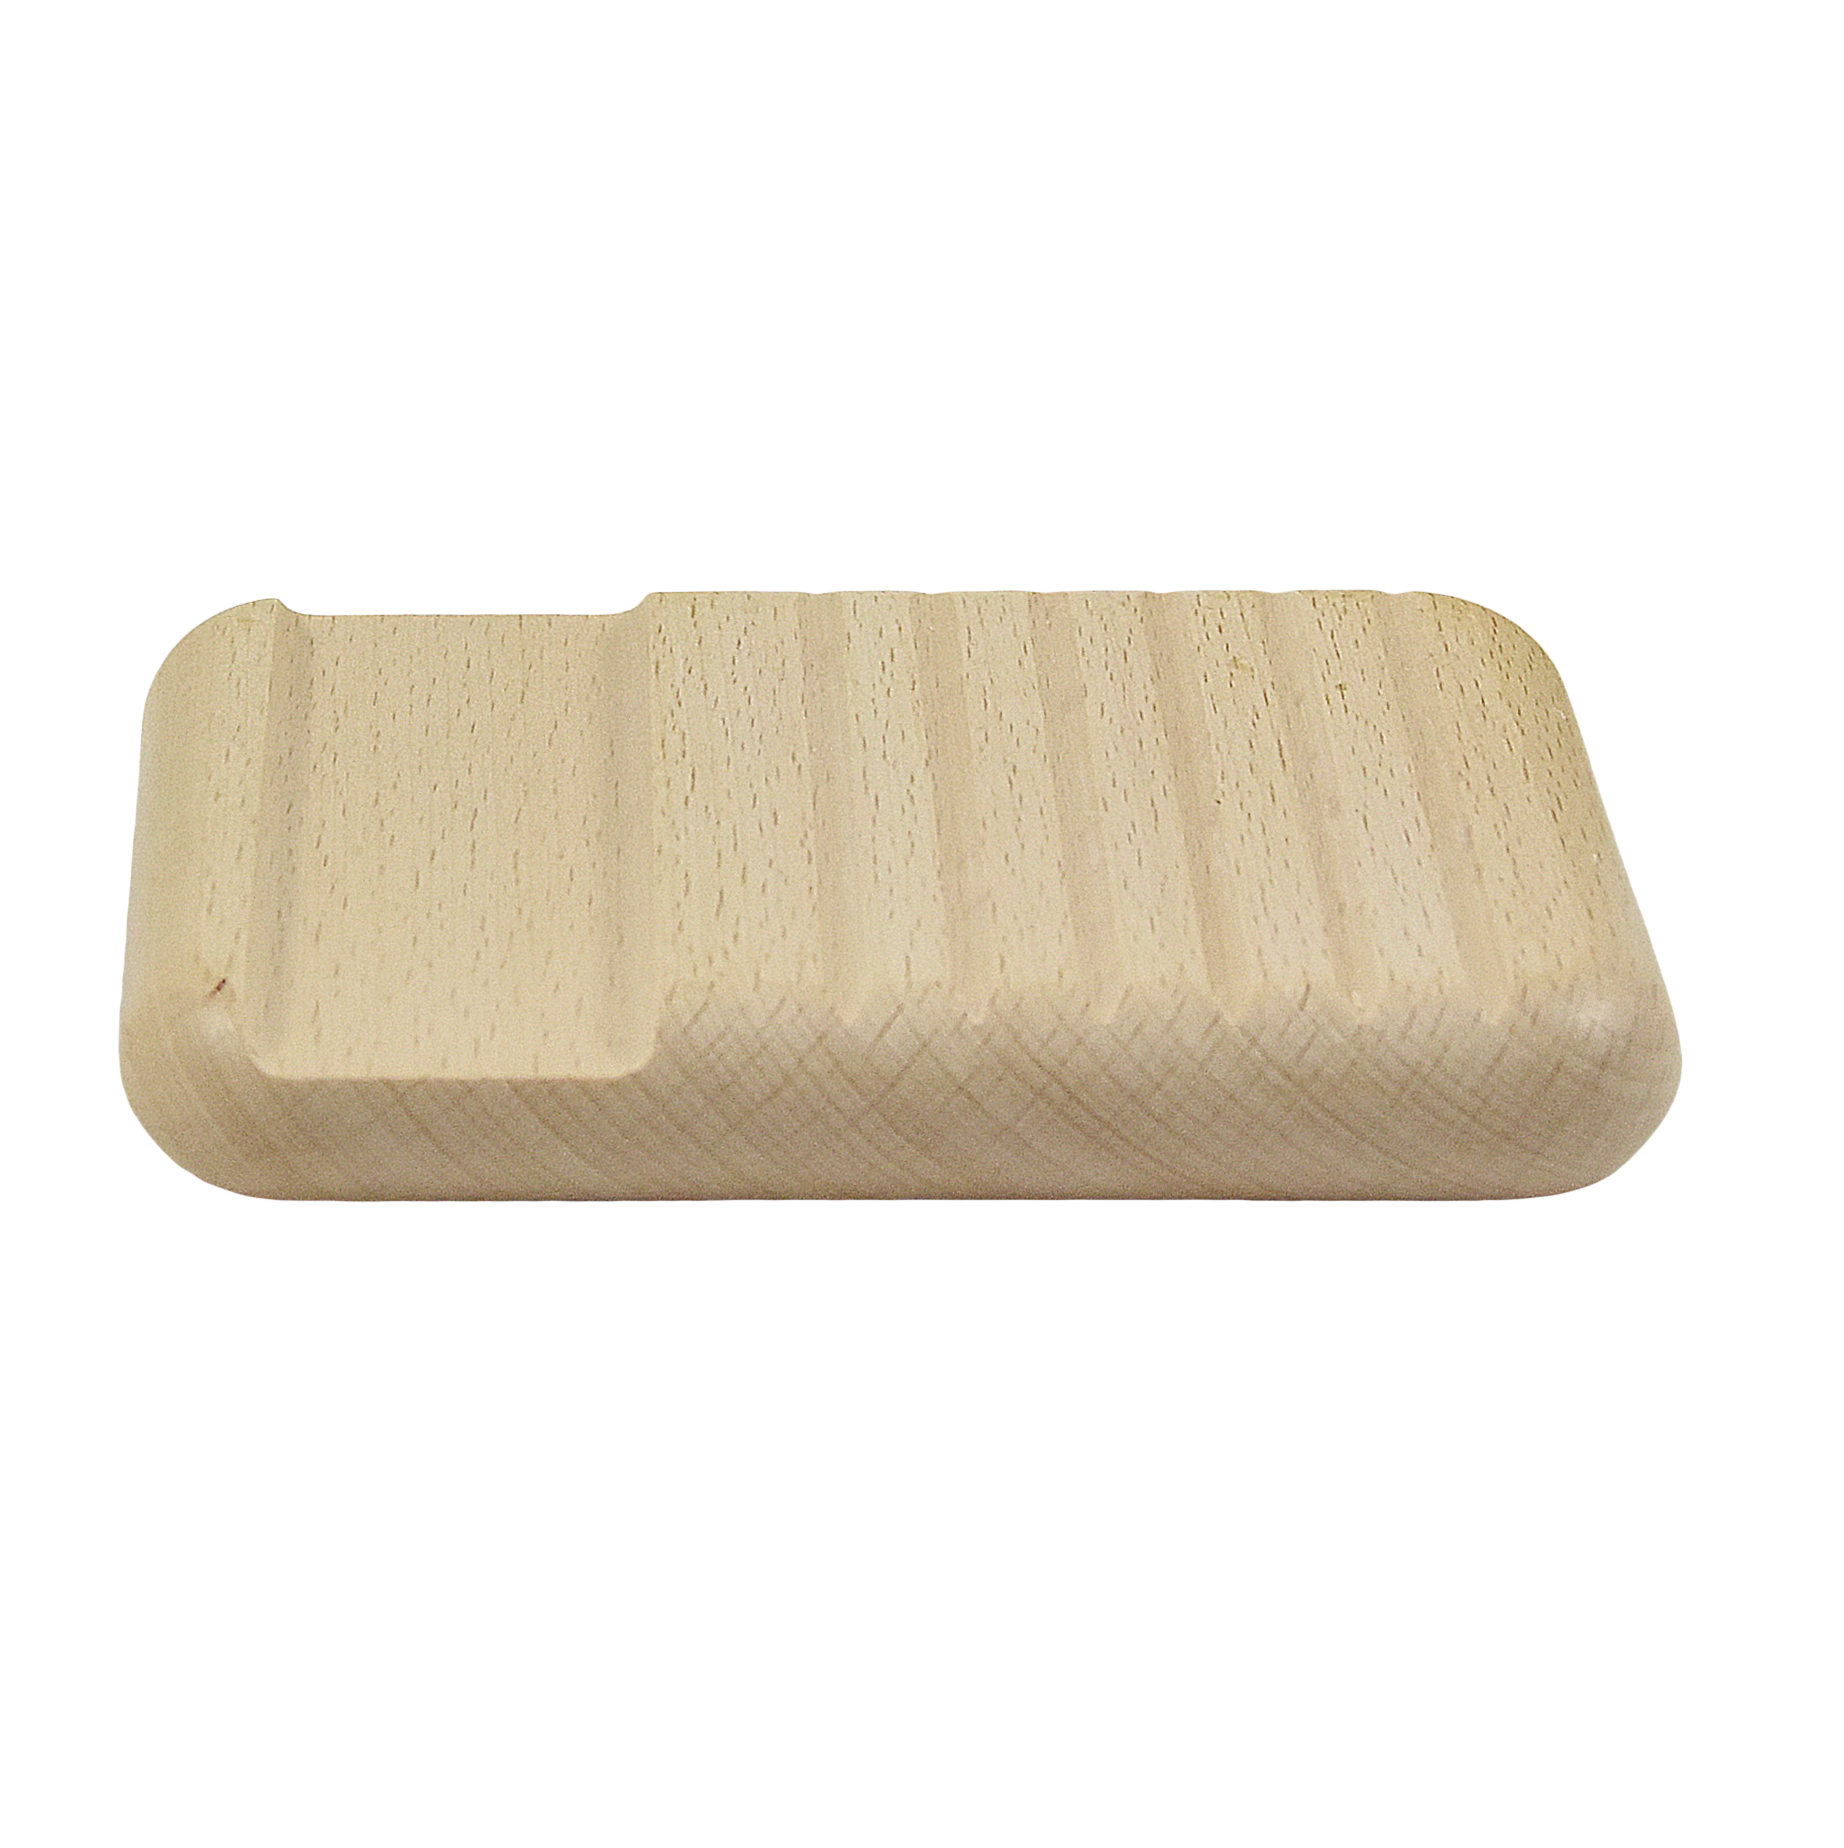 Tradition Soap Holder- Beechwood